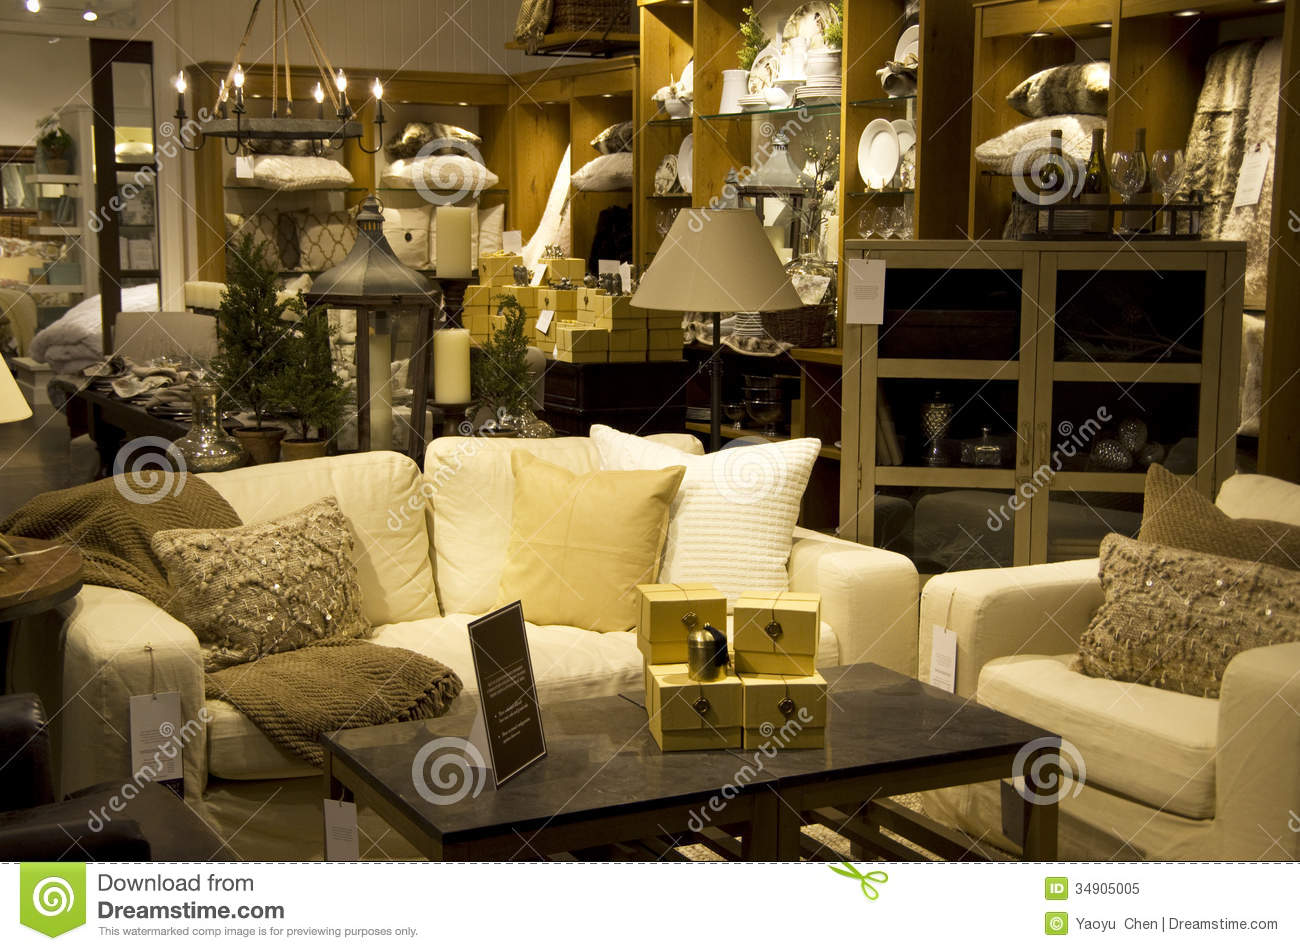 Luxury furniture home decor store royalty free stock photo for Home design furniture store